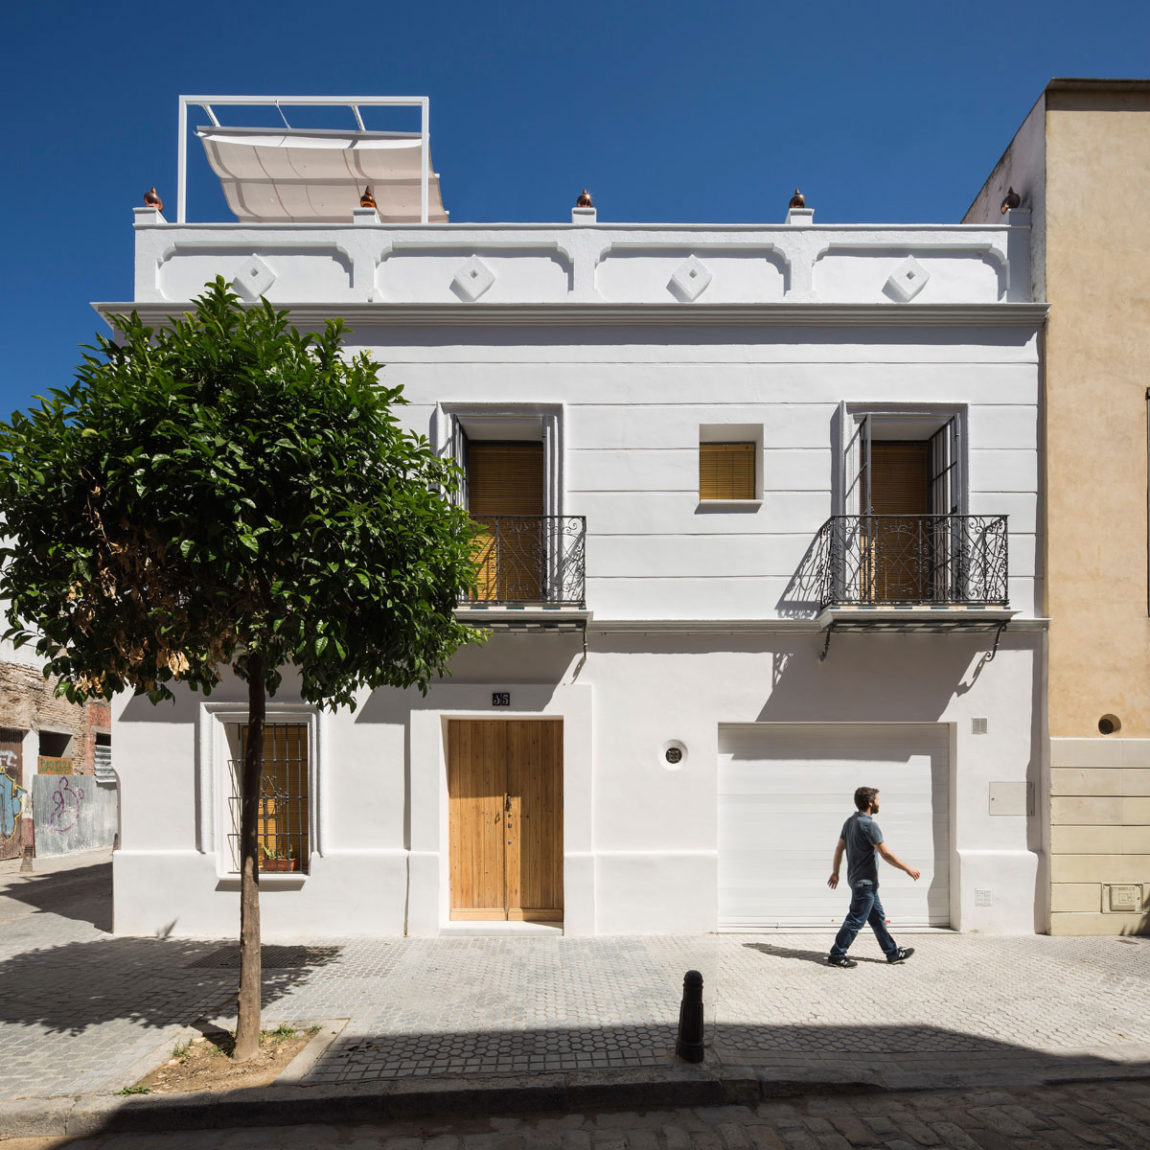 House Refurbishment by Pablo Baruc (1)